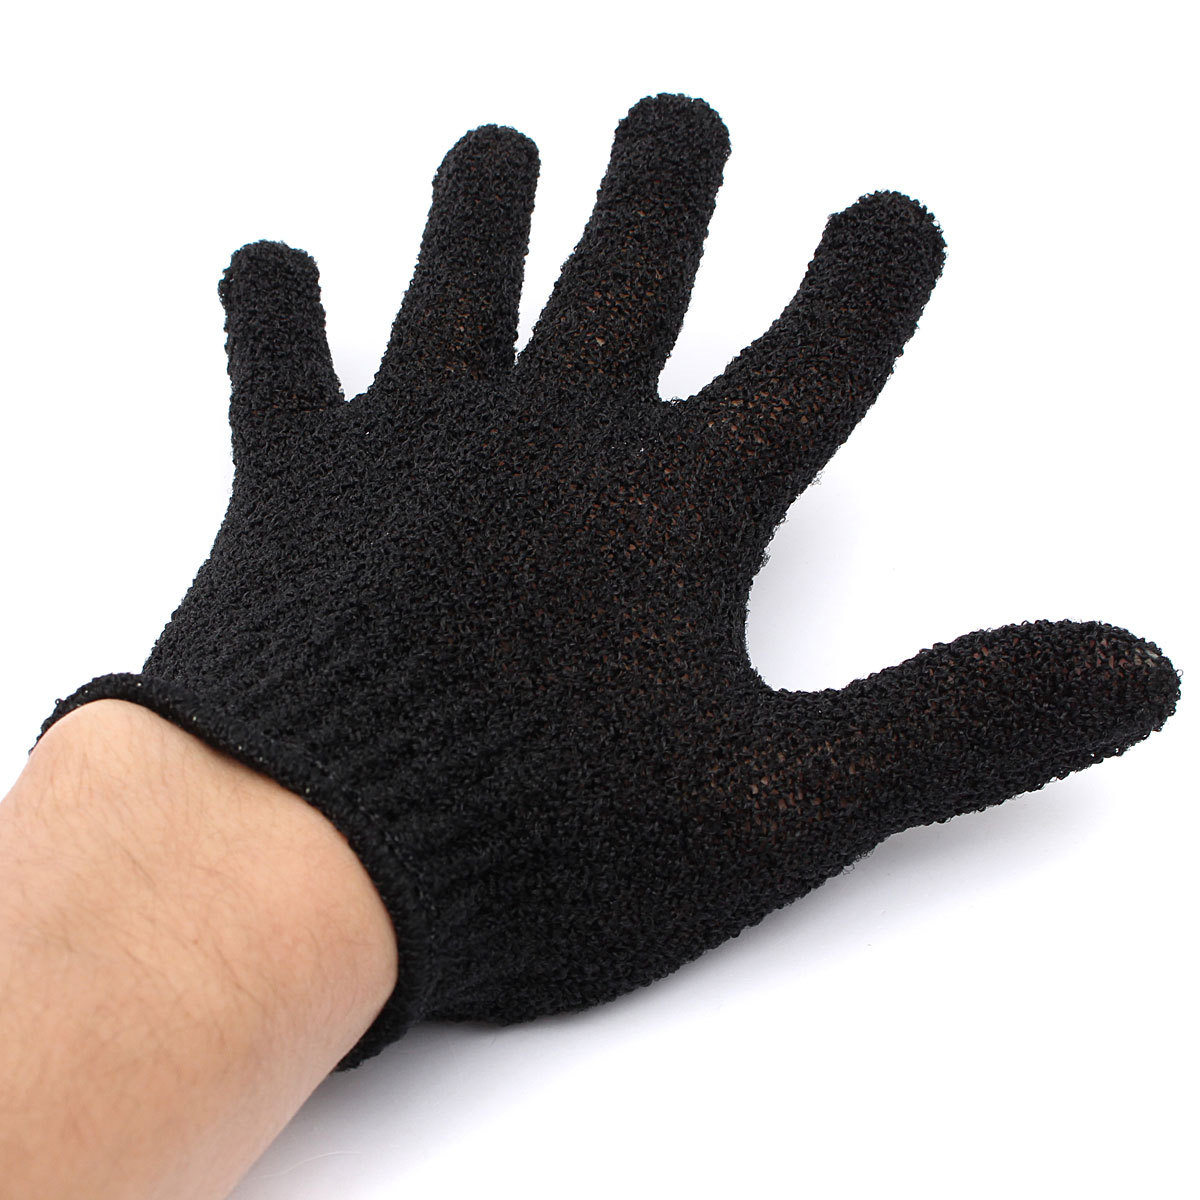 heat resistant gloves for hair styling uk heat resistant curling protective glove hair styling heat 4033